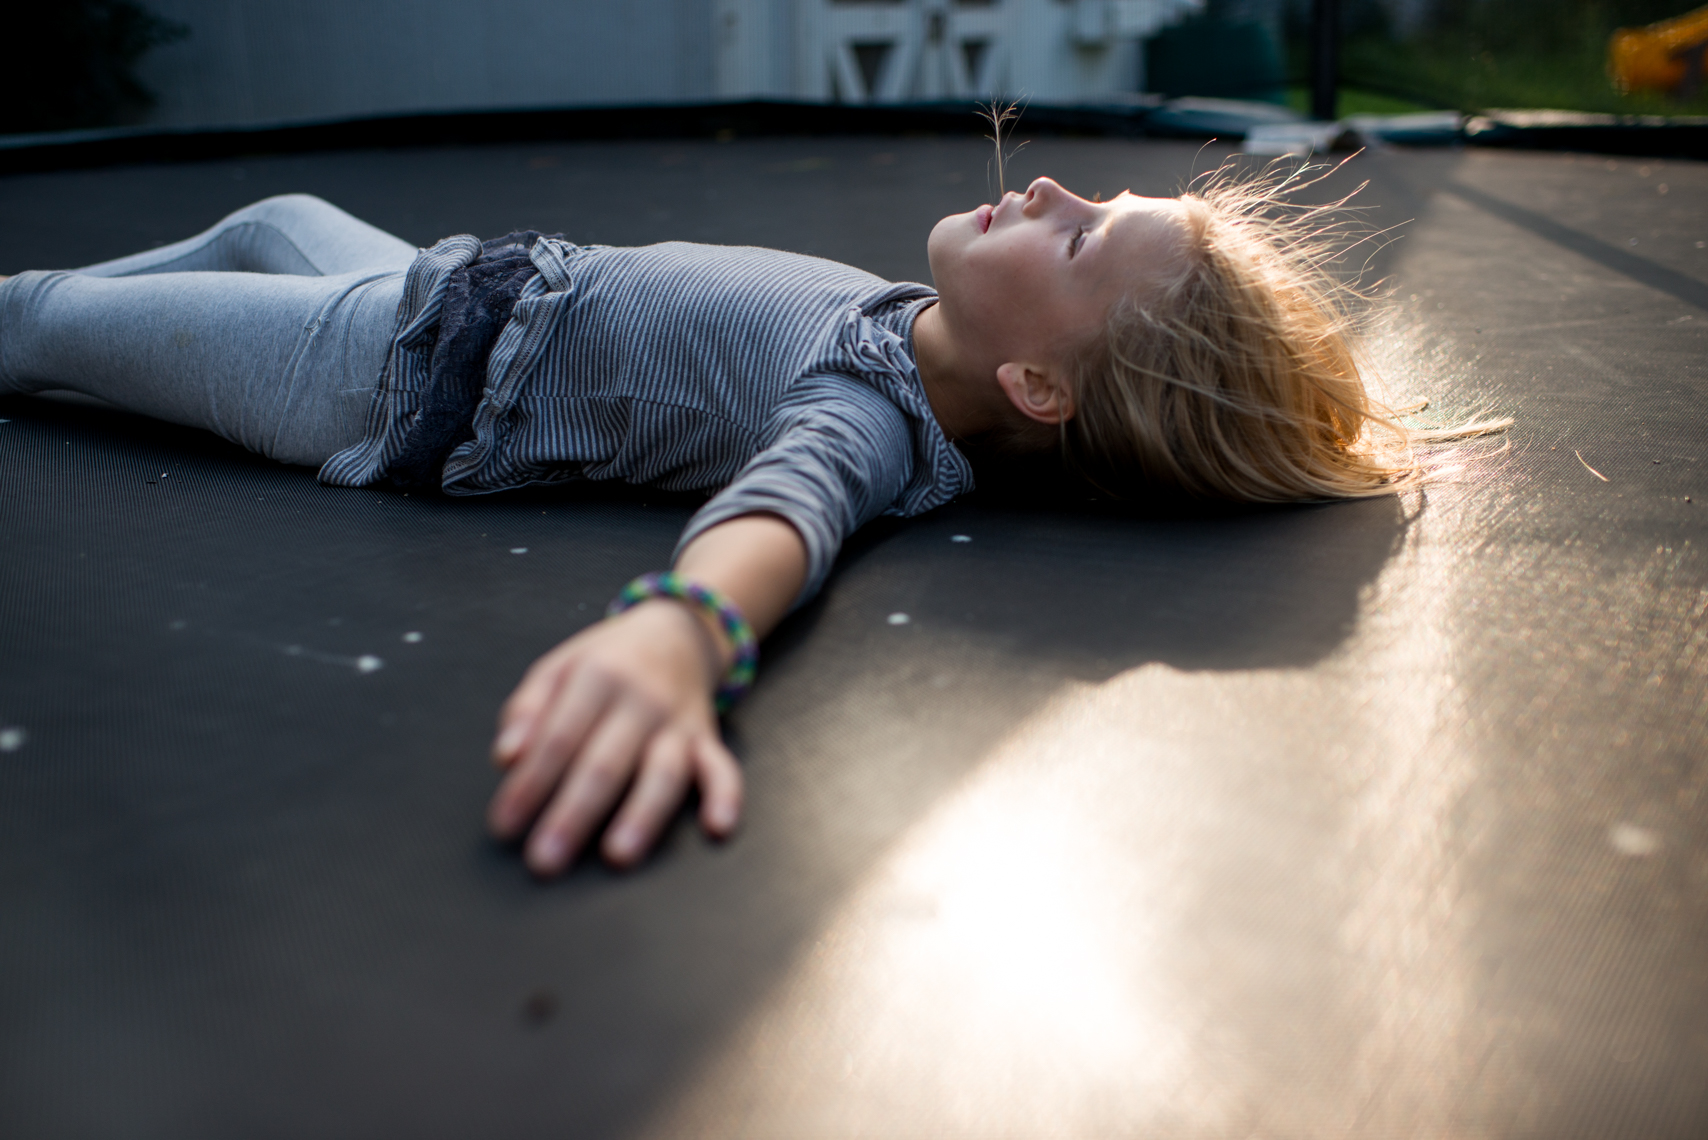 Girl on a trampoline at sunset. Documentary, Editorial, Photojournalist, New Orleans, Nashville, Atlanta, Texas, Austin, Chicago, Washington, D.C., DC, Photographer